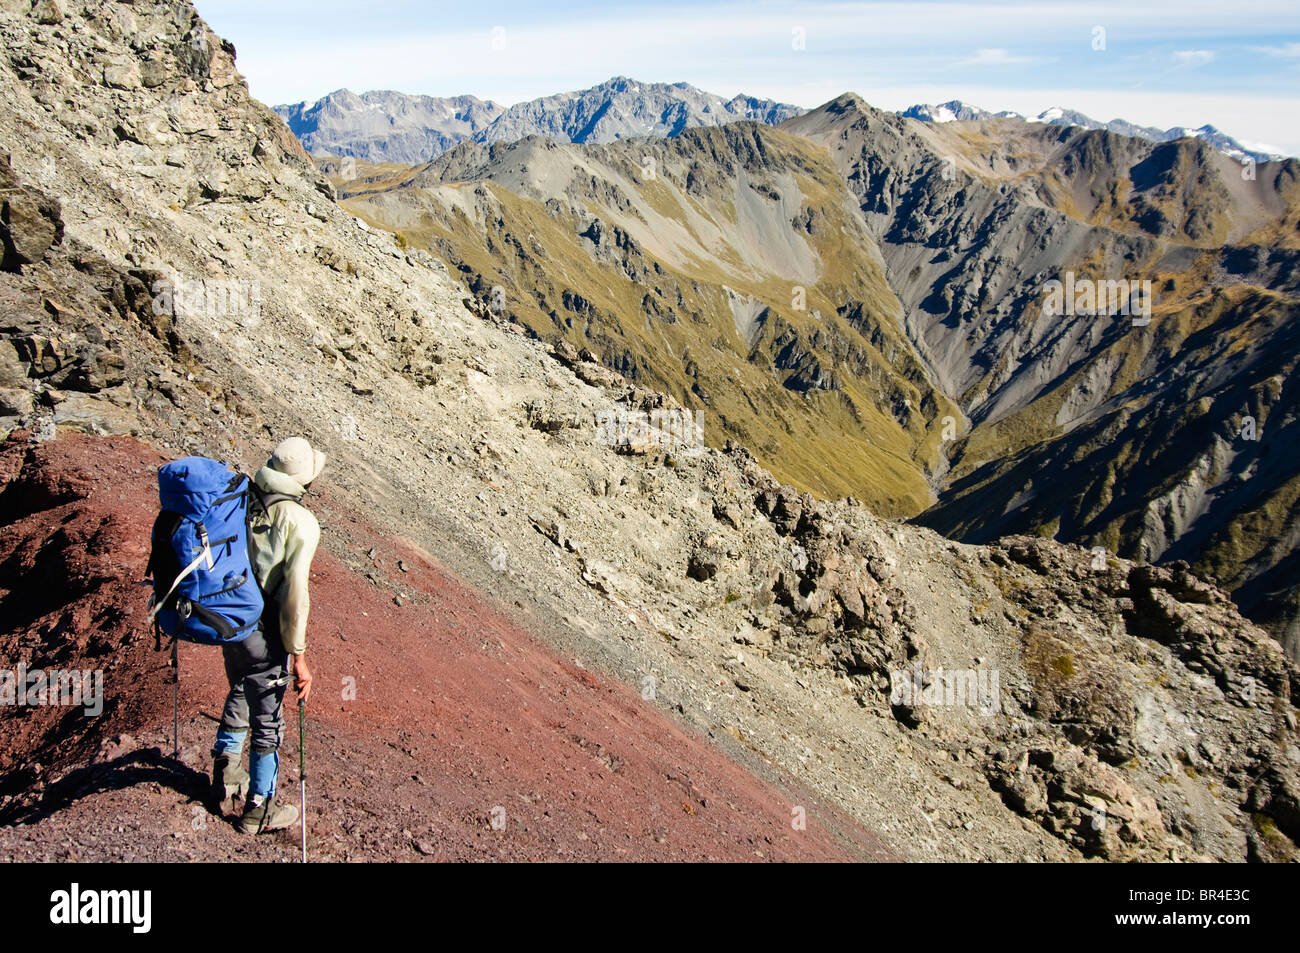 New Zealand, South Island, Arthurs Pass National Park. James O'Donnell during a ridge traverse of the Alpine - Stock Image